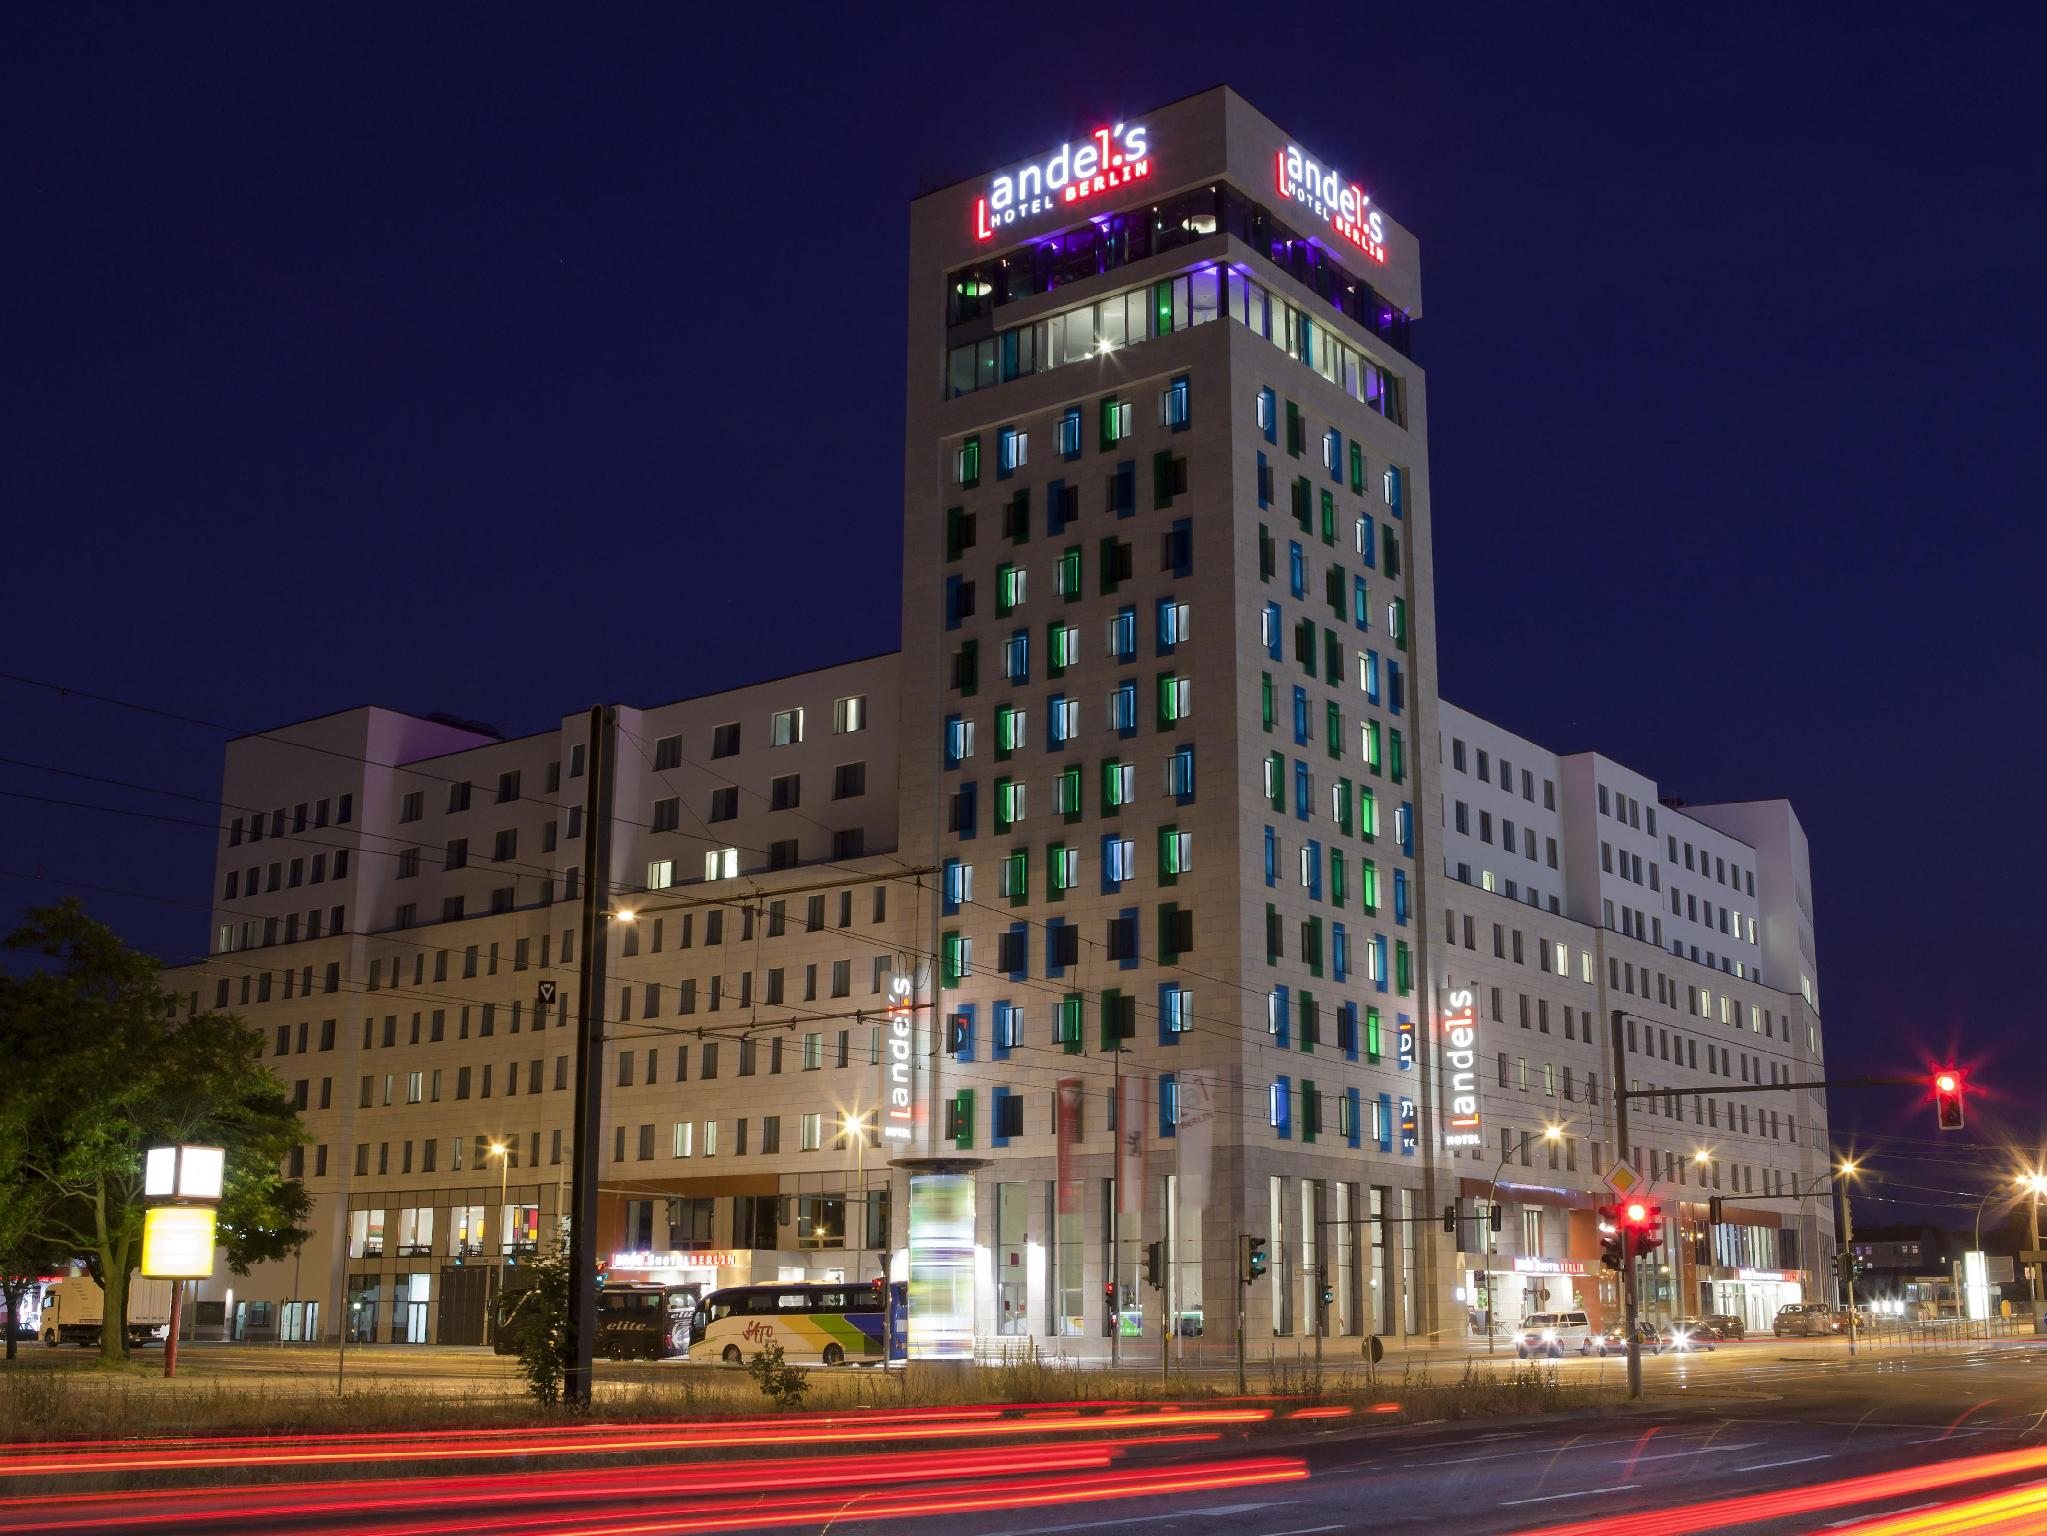 andel's Hotel Berlin, managed by Vienna International Hotels and Resorts Berlin - View